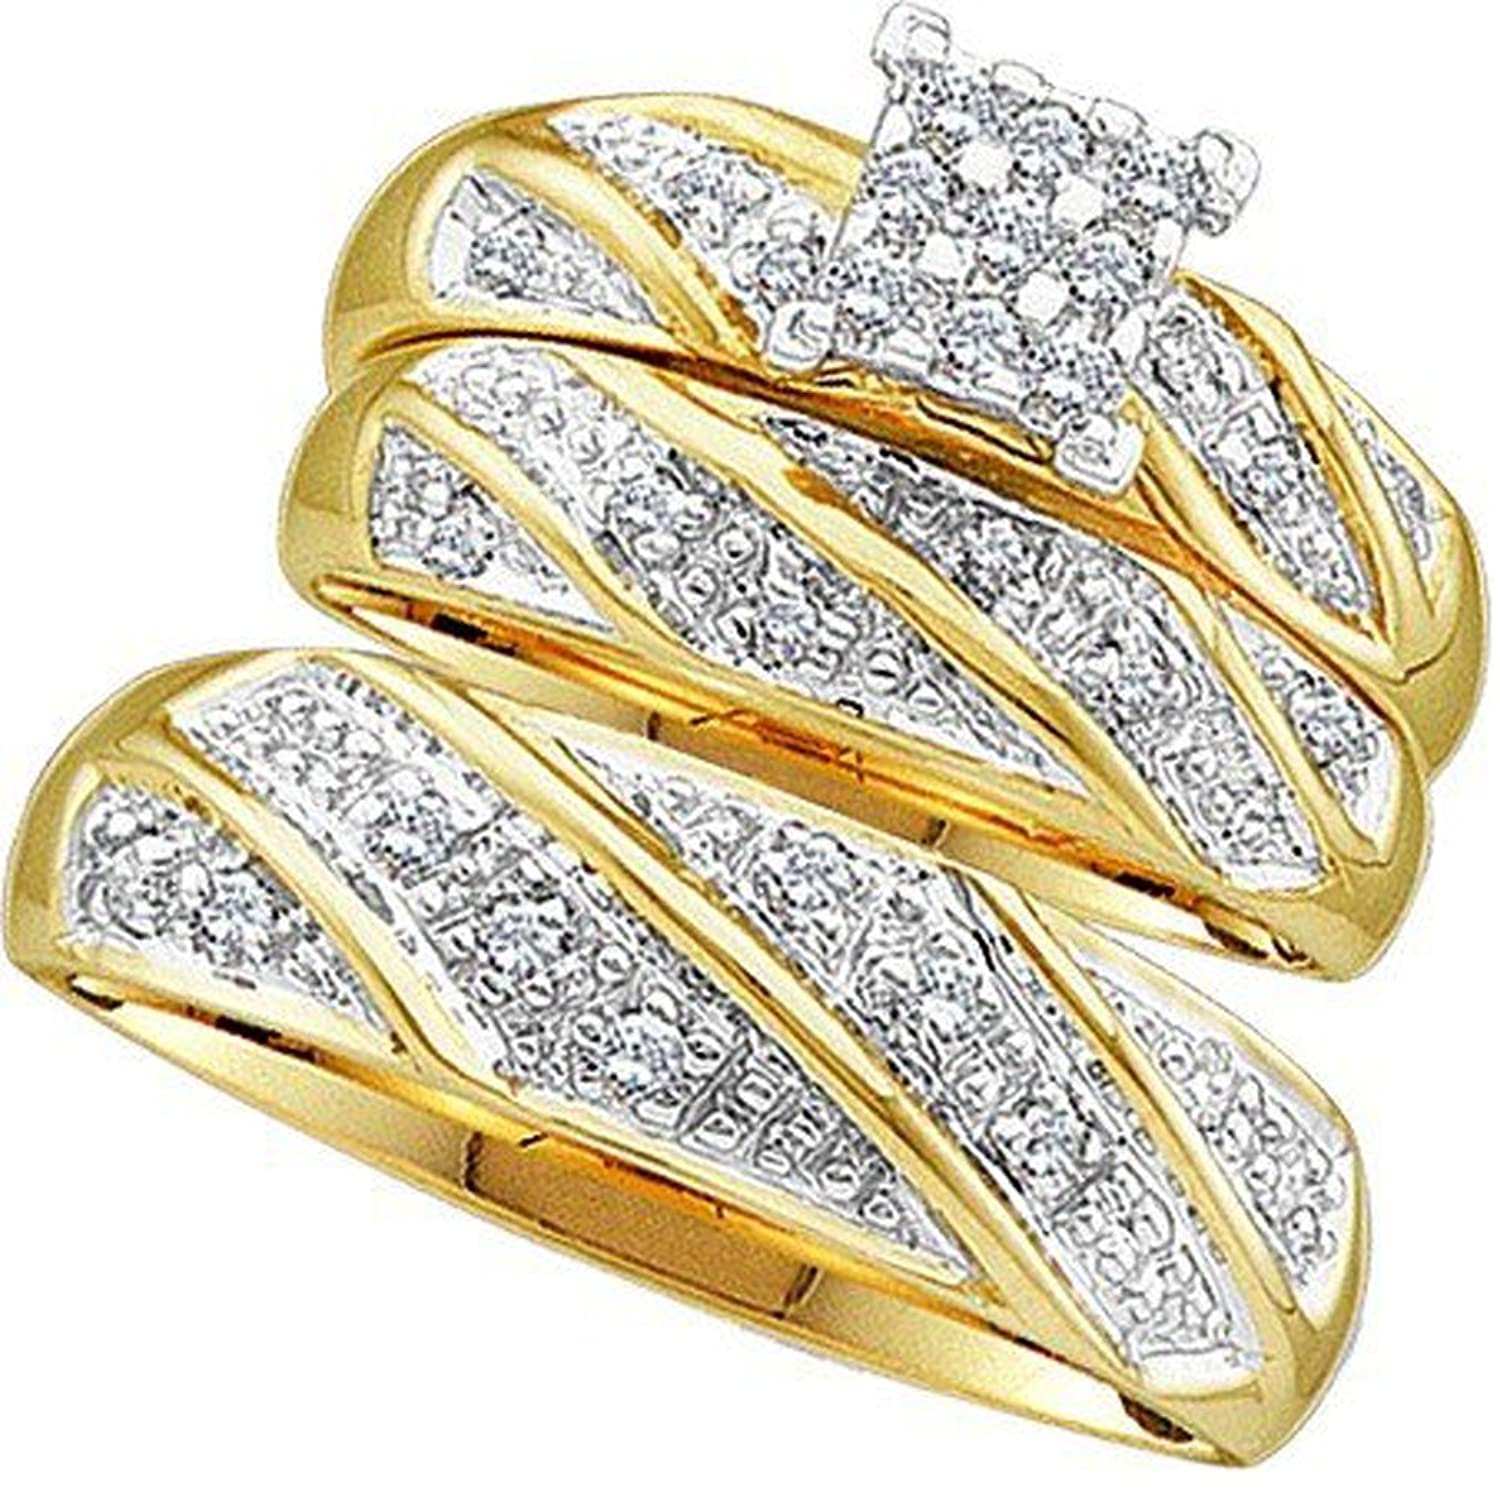 ebay com photo women gold for band millsanjuan of men comfort x rumor bands fit her ring solid wedding attractive yellow